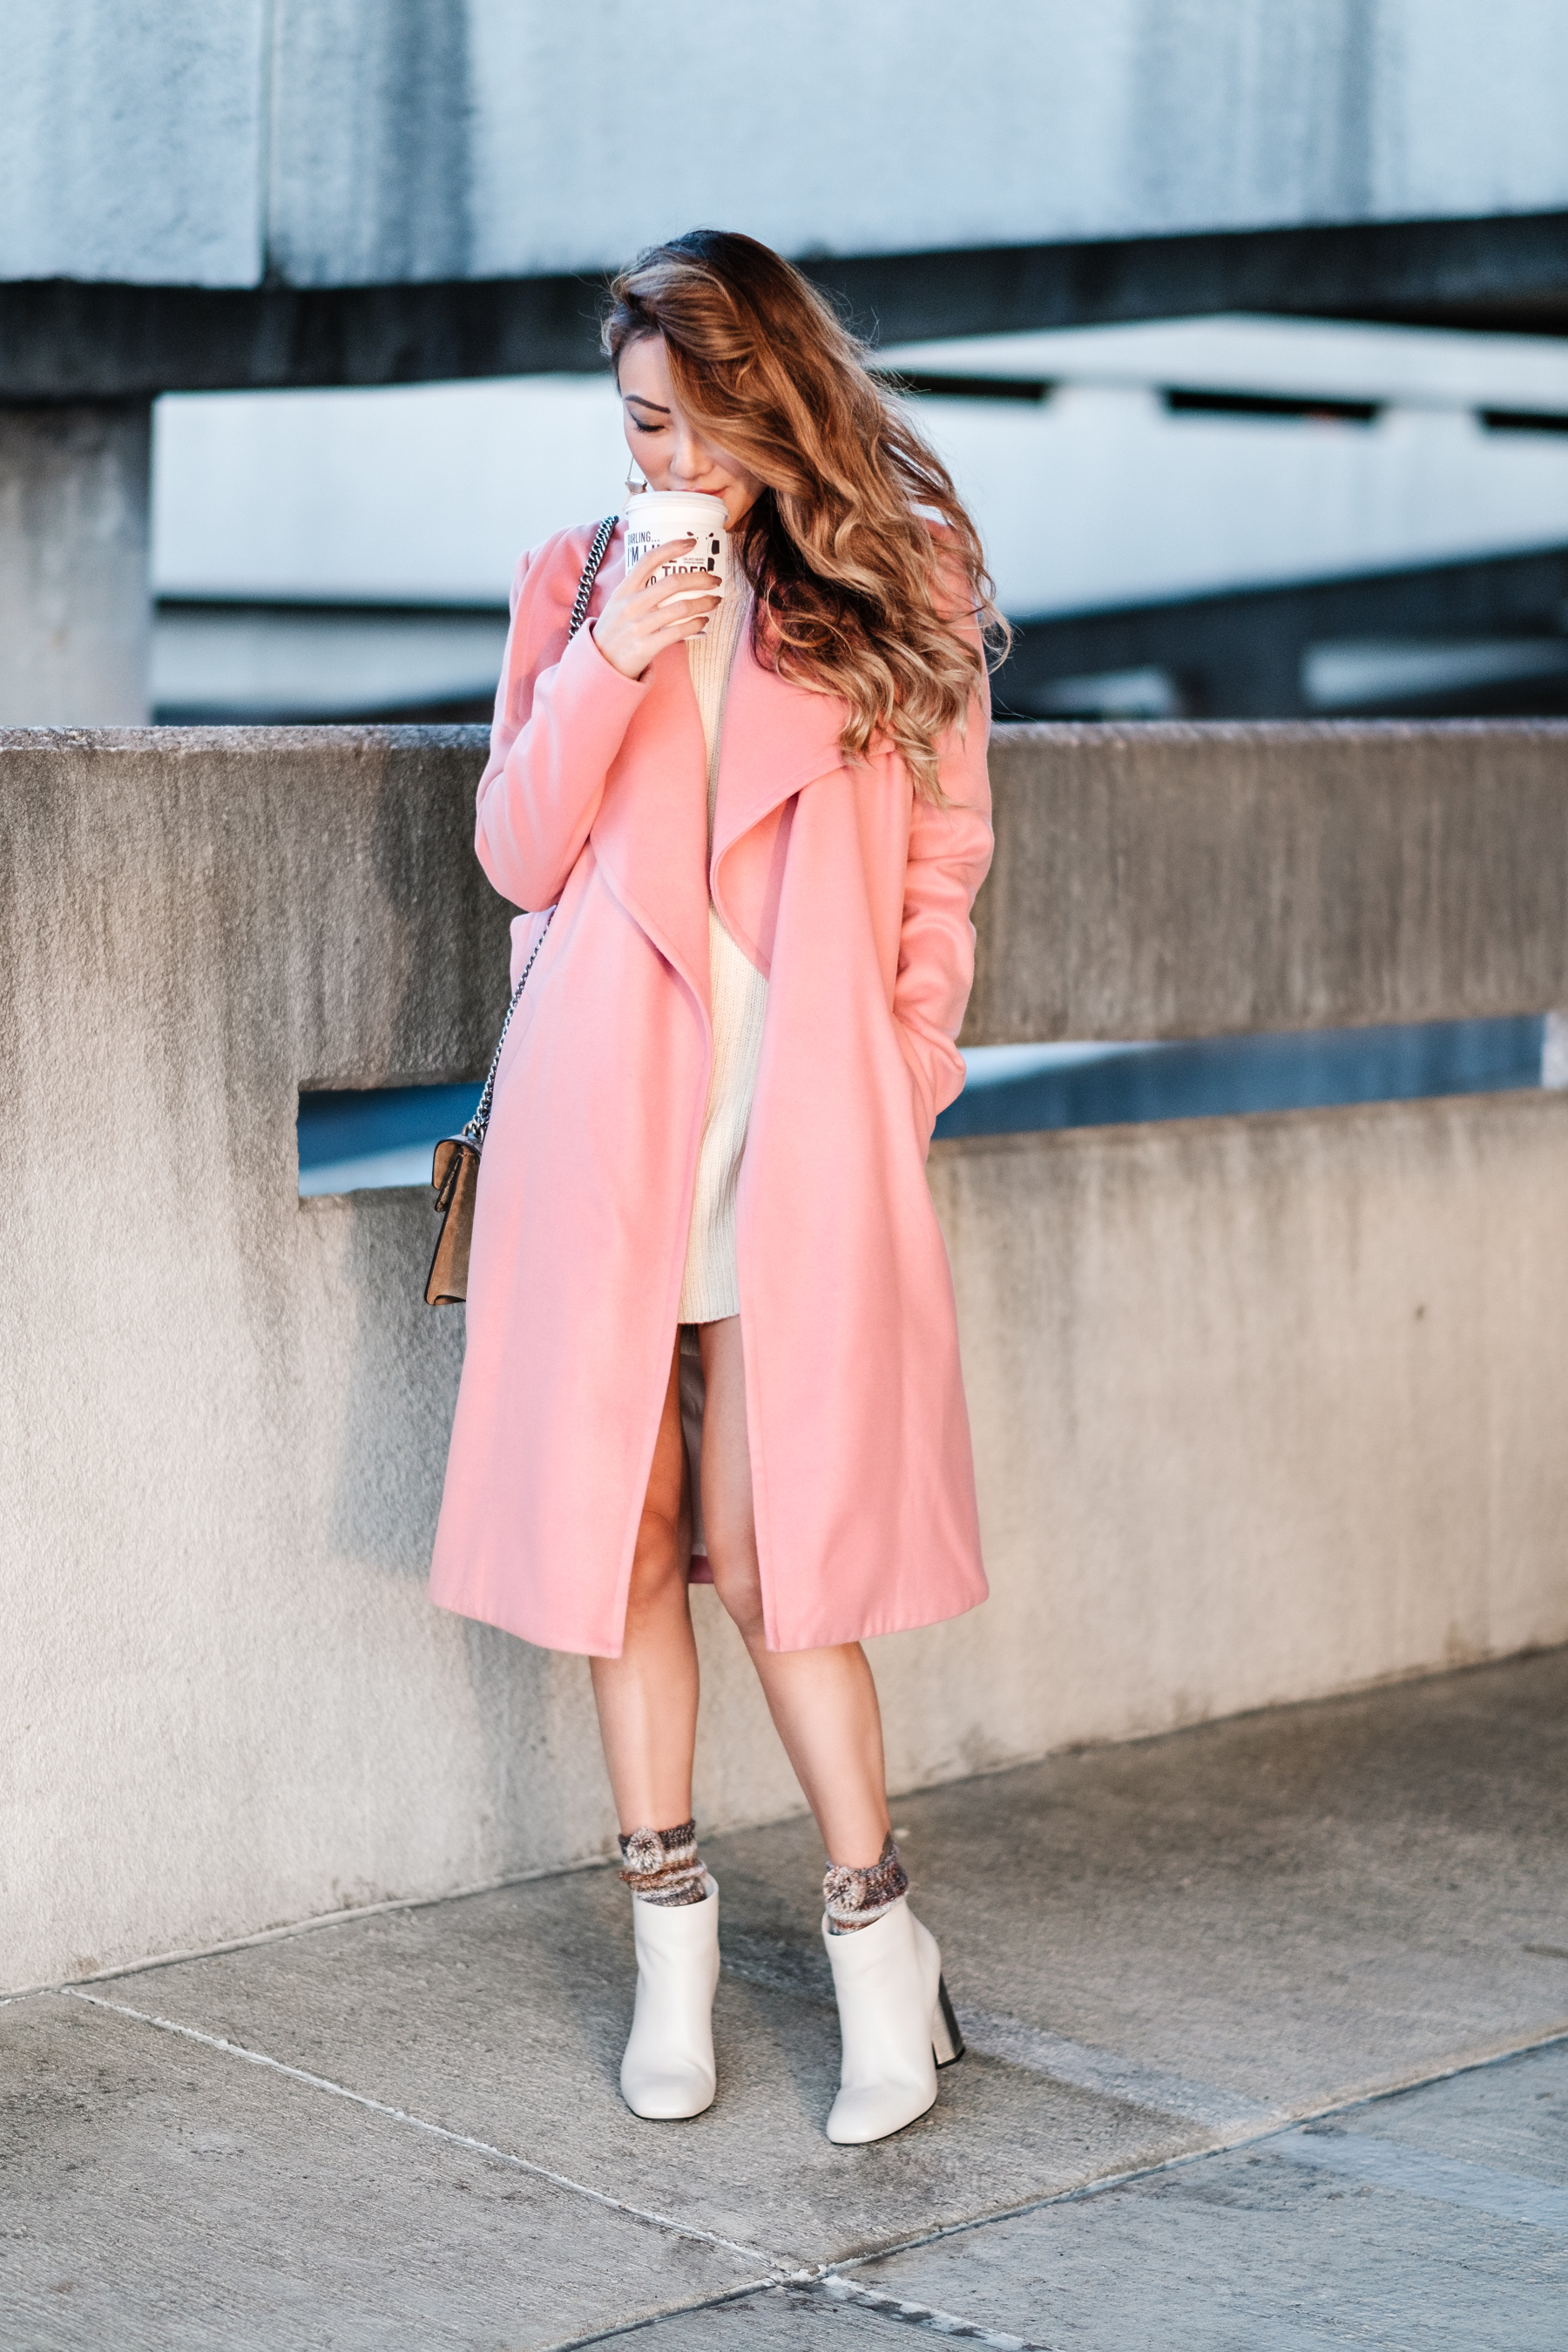 How To Style A Pink Coat // NotJessFashion.com